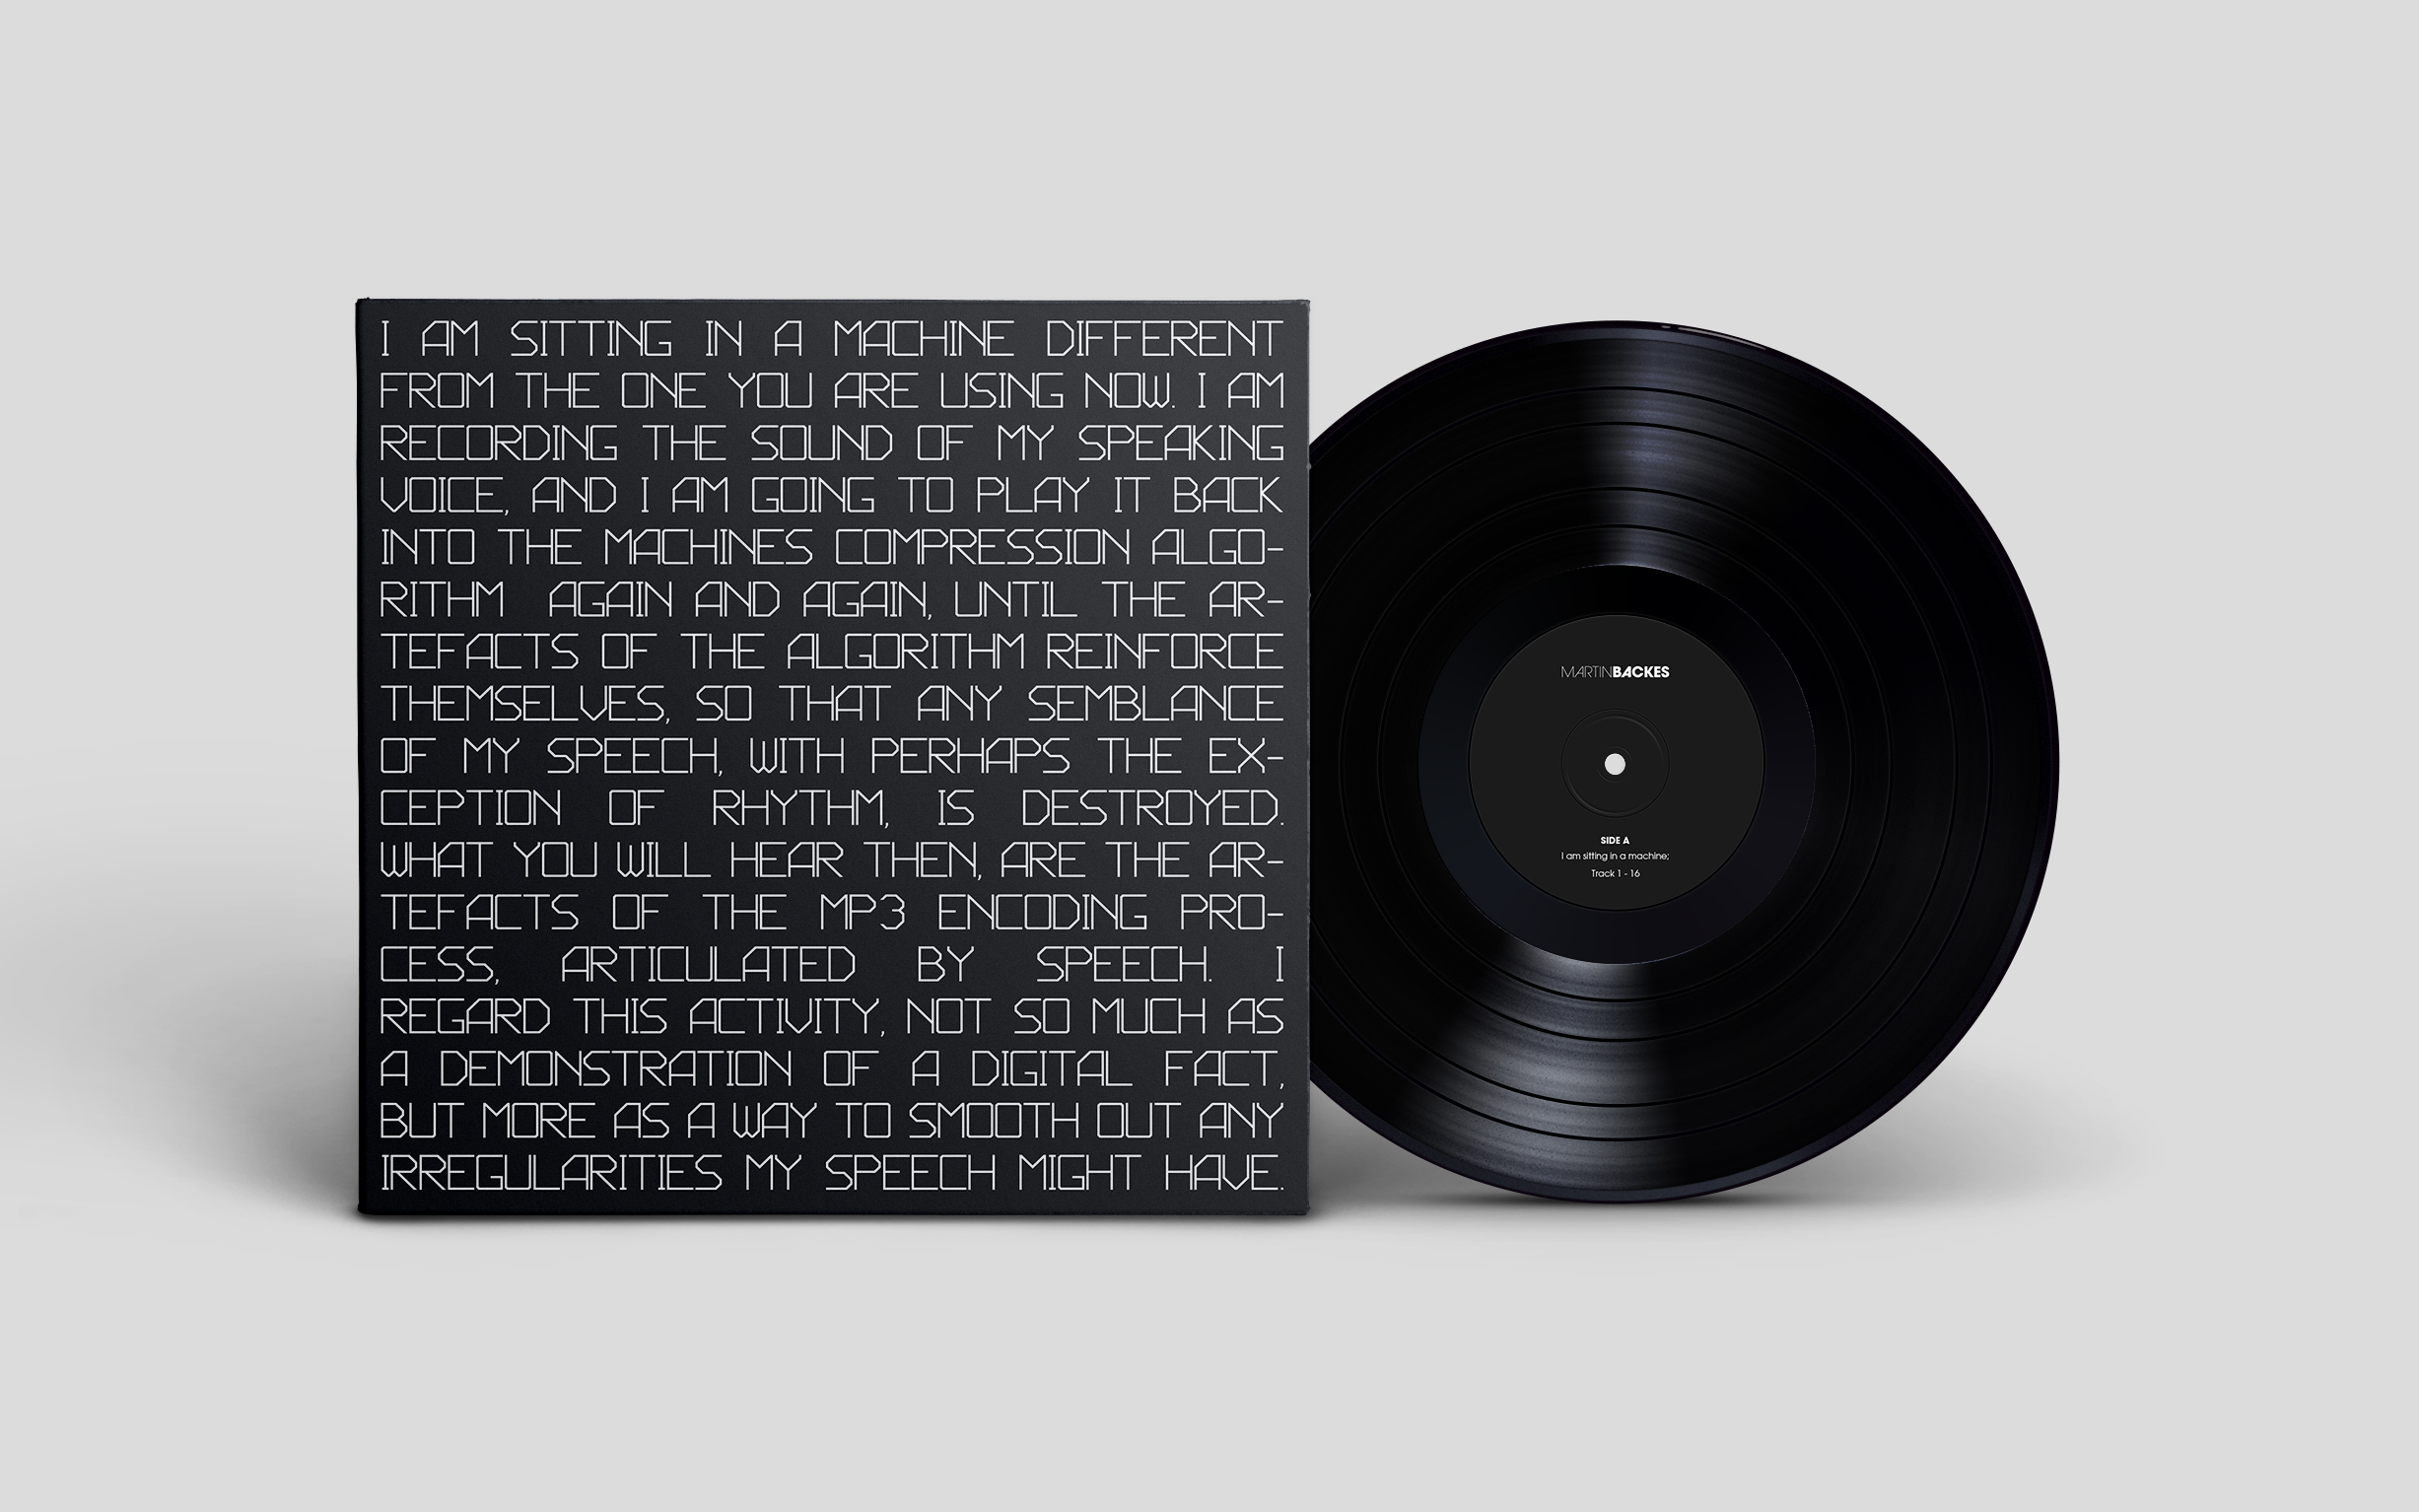 I_am-sitting_in_a_machine-vinyl_front_2454px